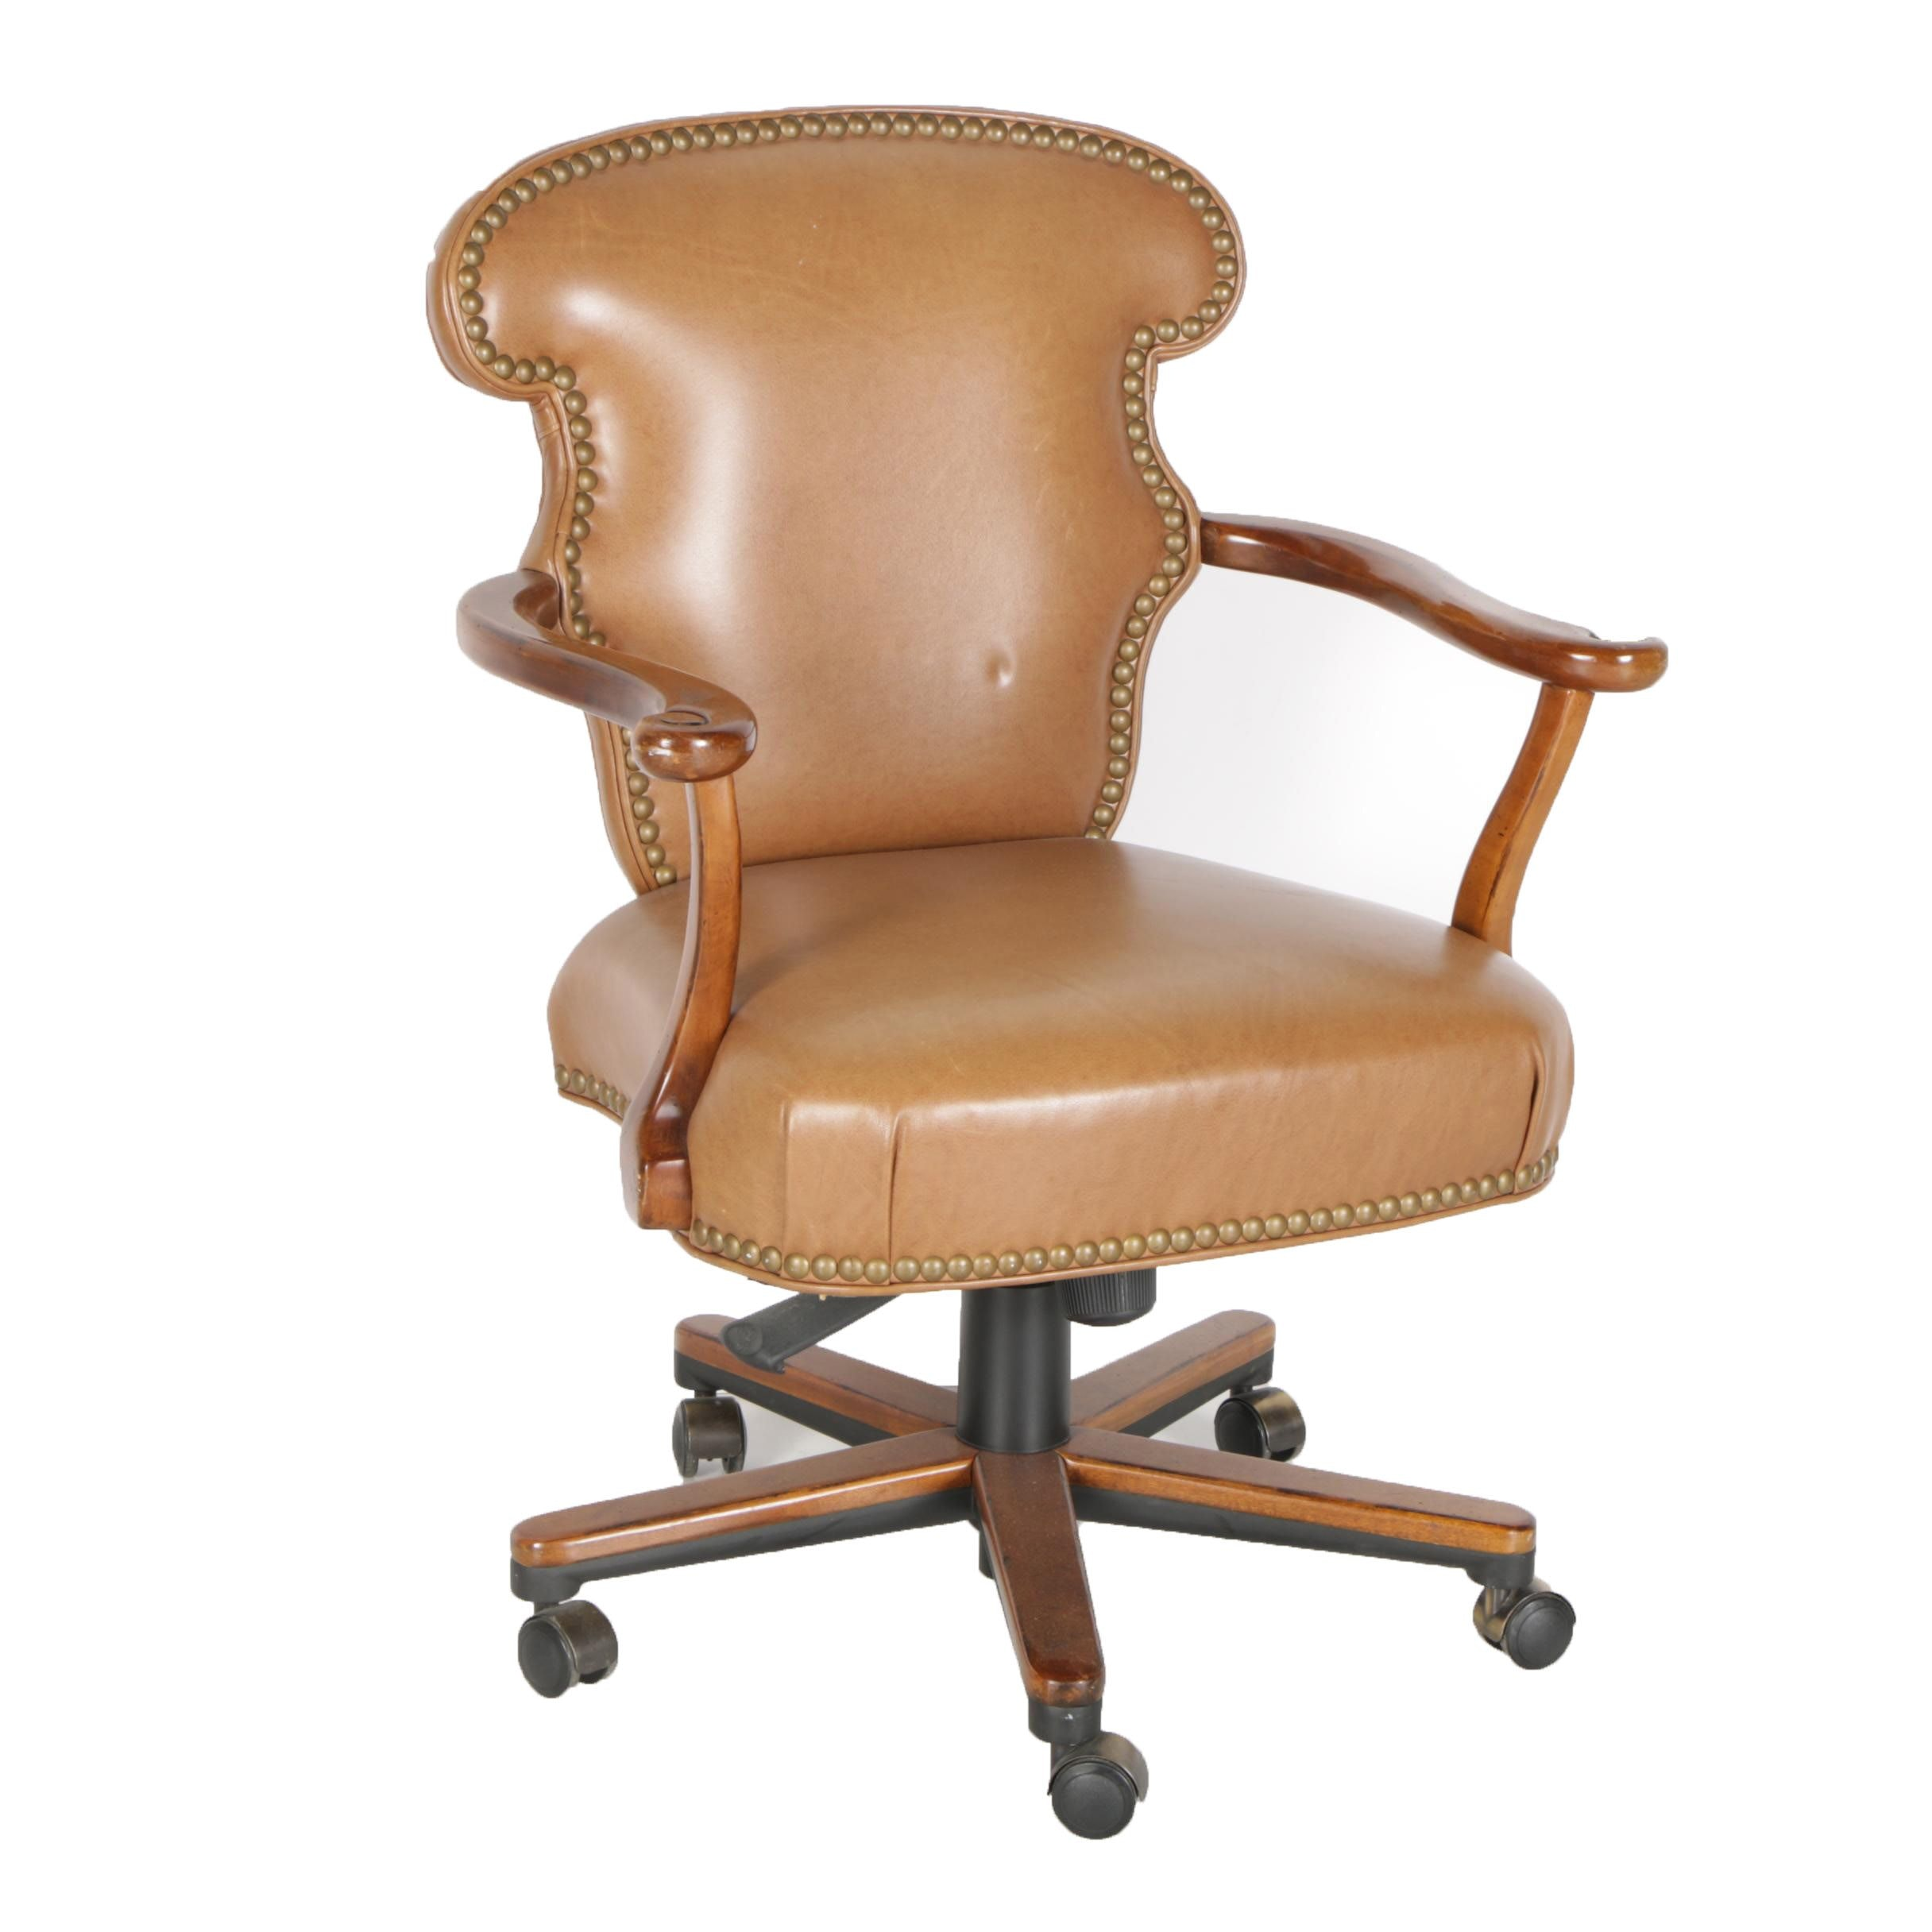 Leather Upholstered Rolling Desk Chair by Century Furniture